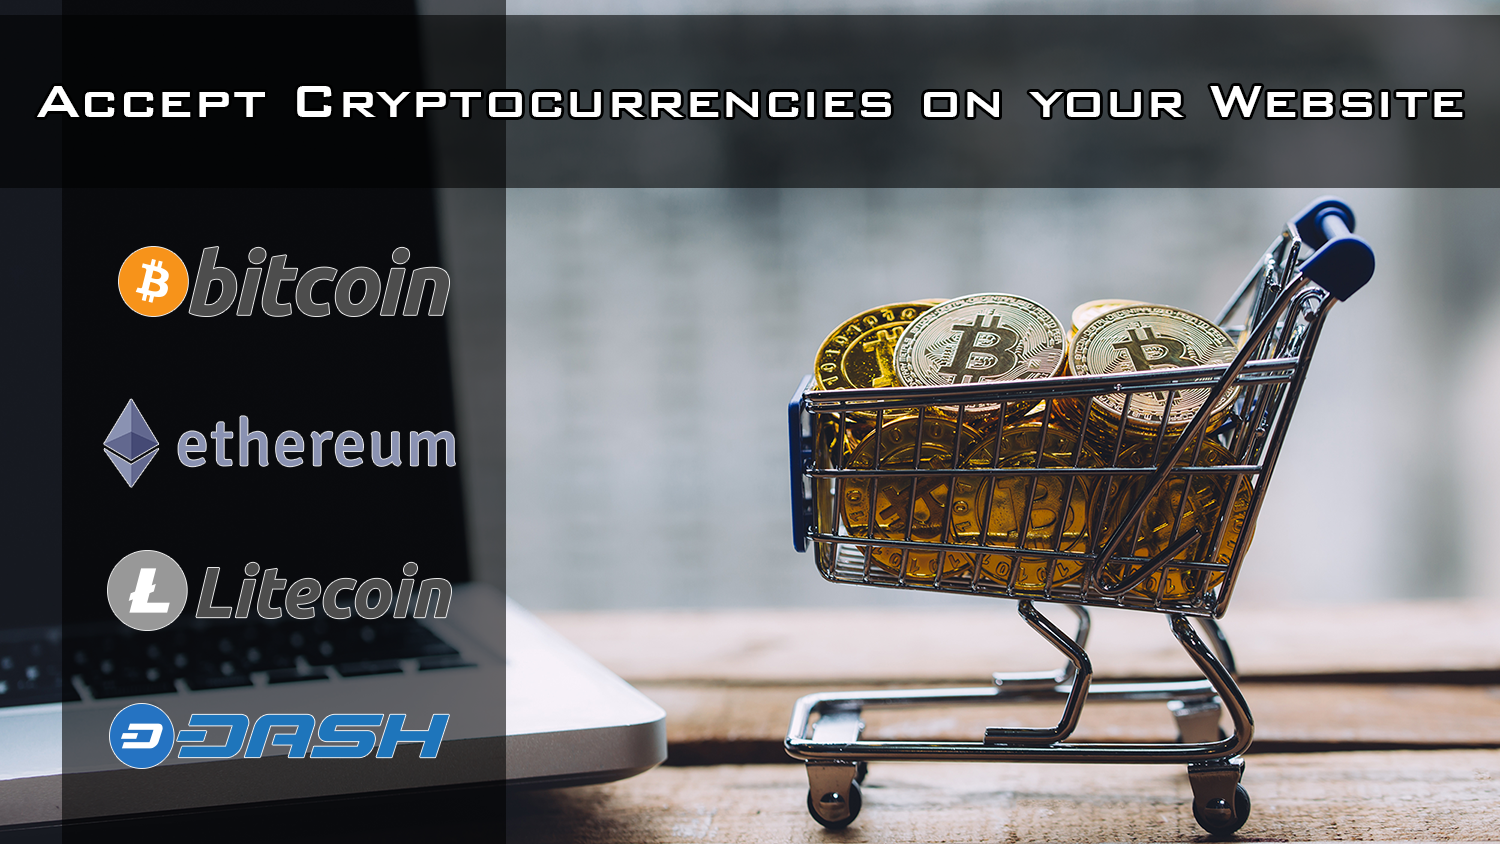 Accept Cryptocurrency on your website